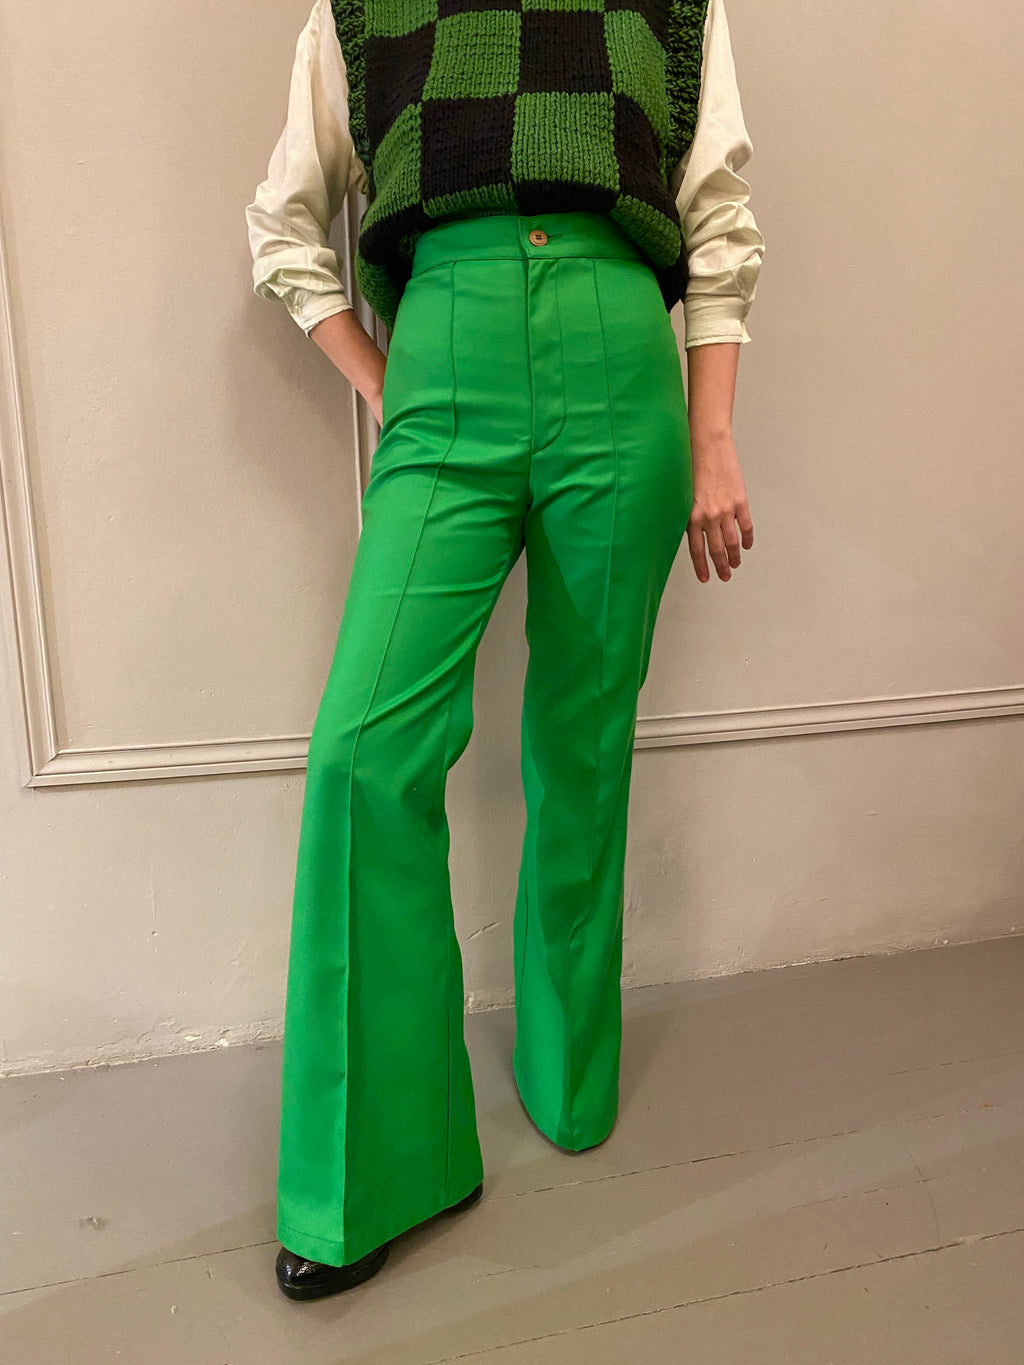 Green Seventies Pants